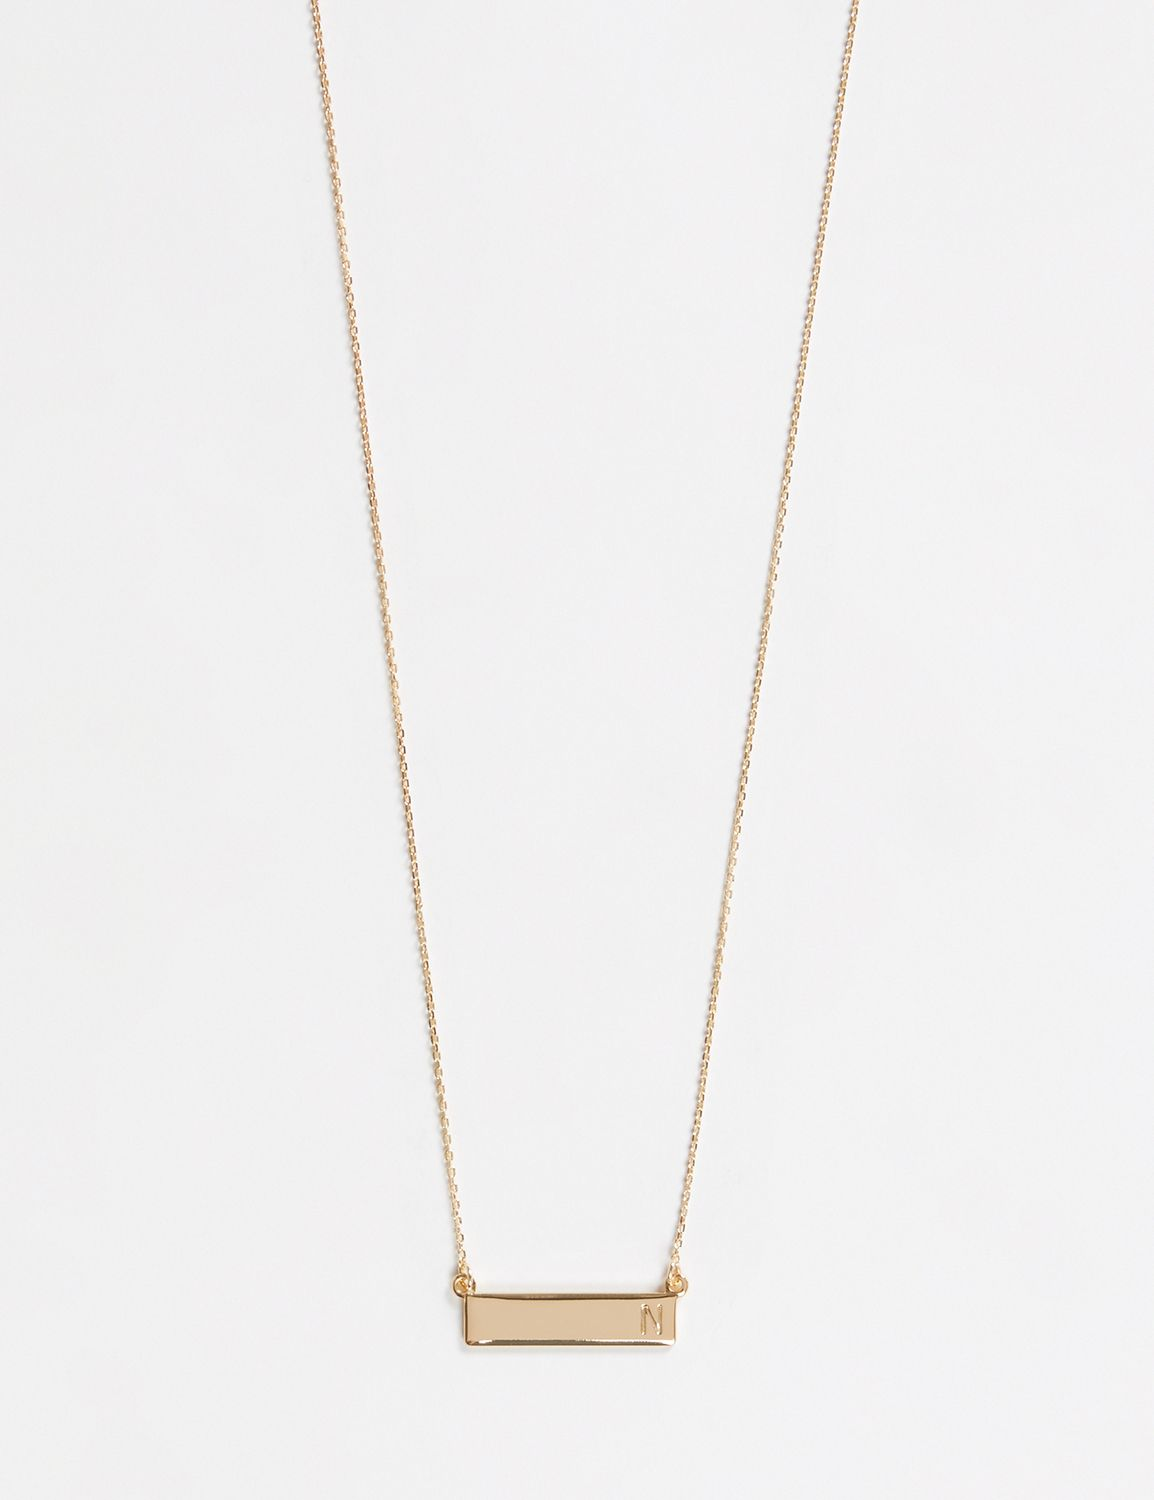 Lane Bryant Womens Initial Bar Pendant Necklace ONESZ Gold N